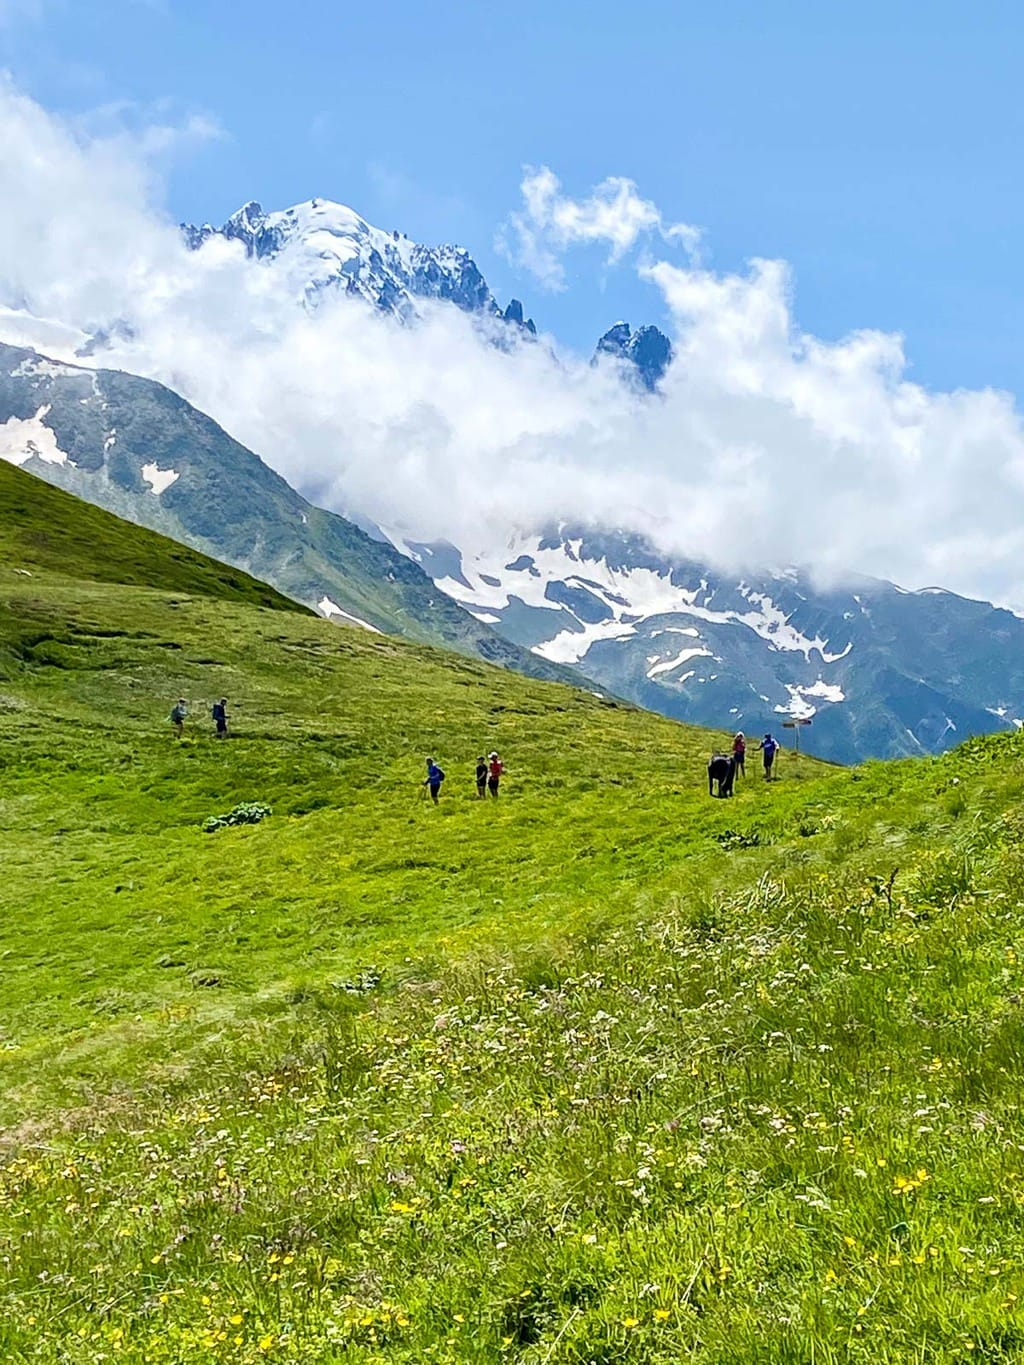 Vertical photo of hikers walking the Alpine meadow trails near Argentiere, France with Mount Blanc in the background.